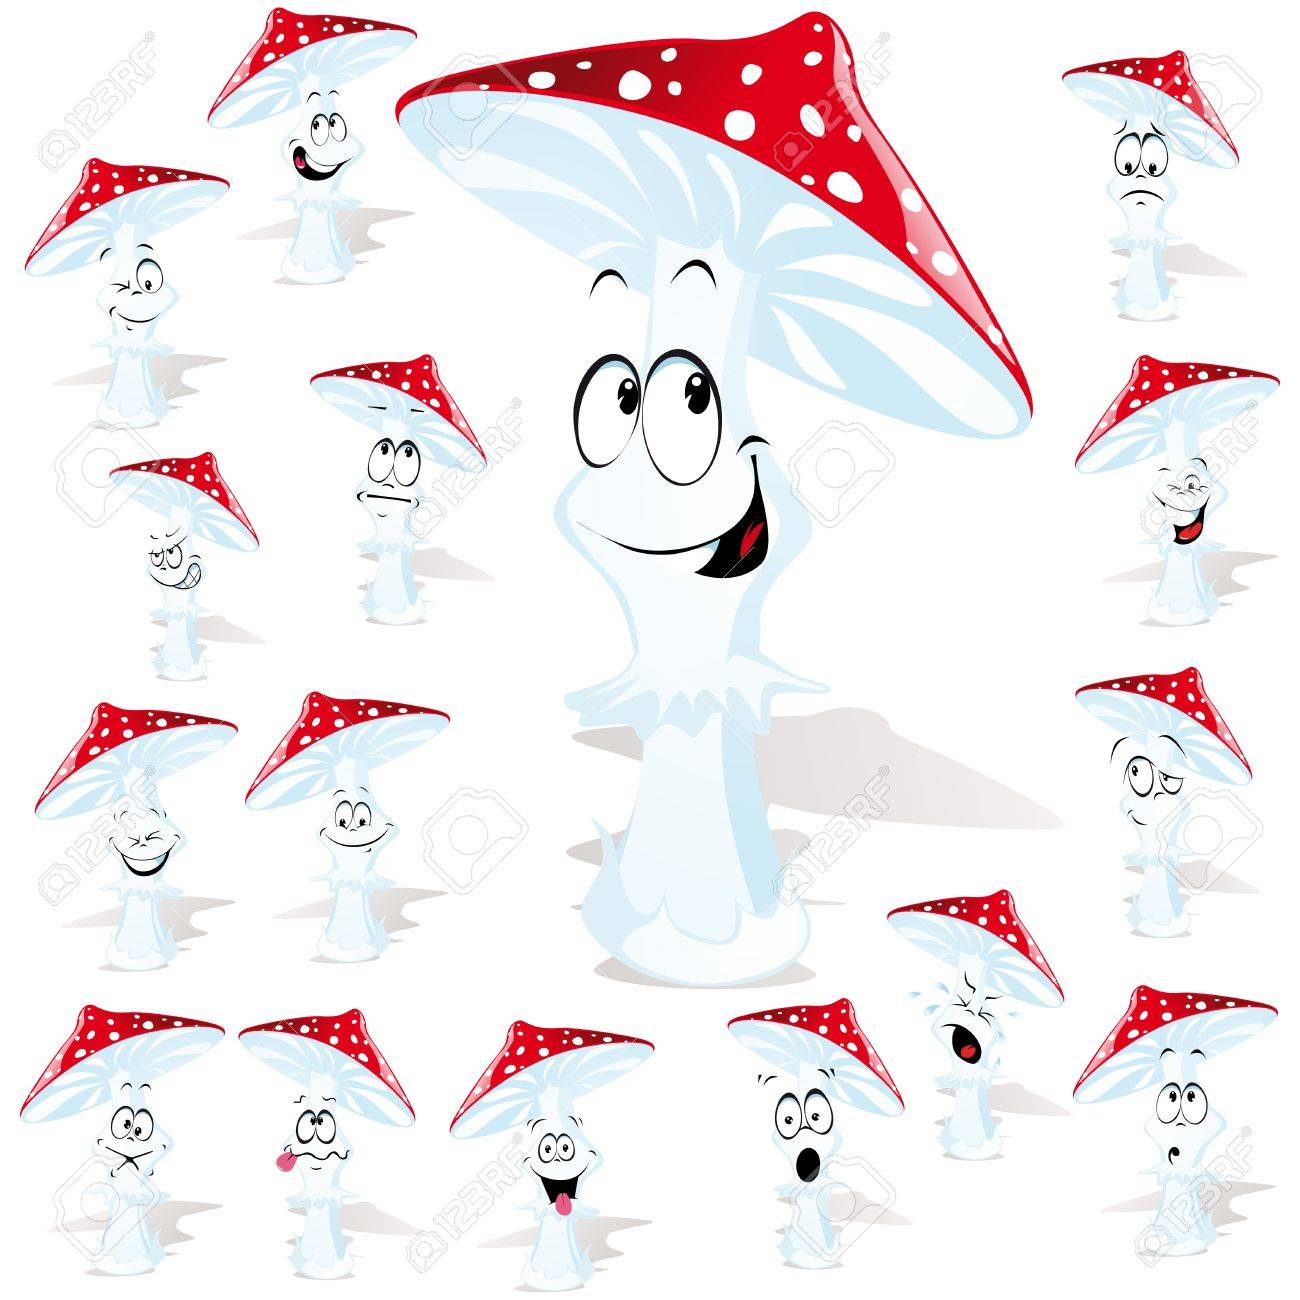 toadstool with many expressions Stock Vector - 15094564